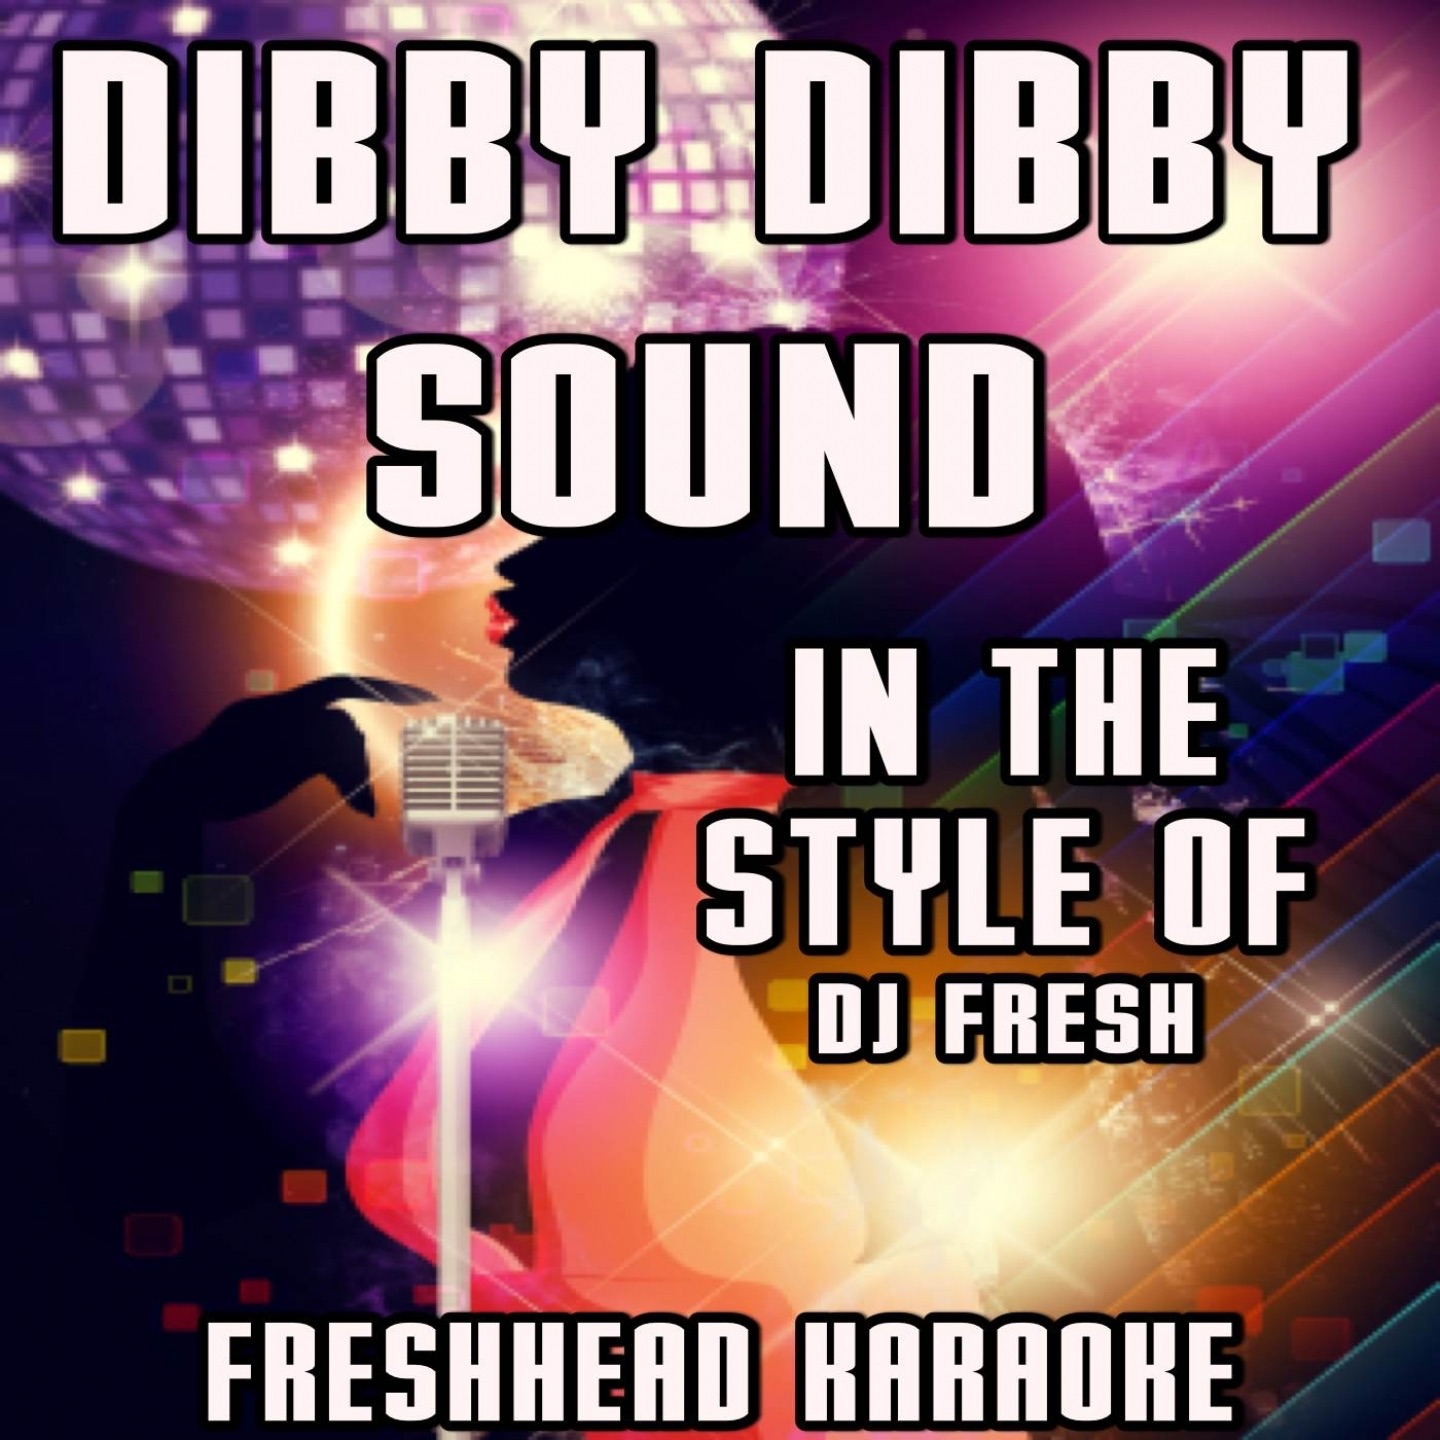 Dibby Dibby Sound (Karaoke Version) [In the Style of DJ Fresh, Jay Fay, Ms Dynamite]